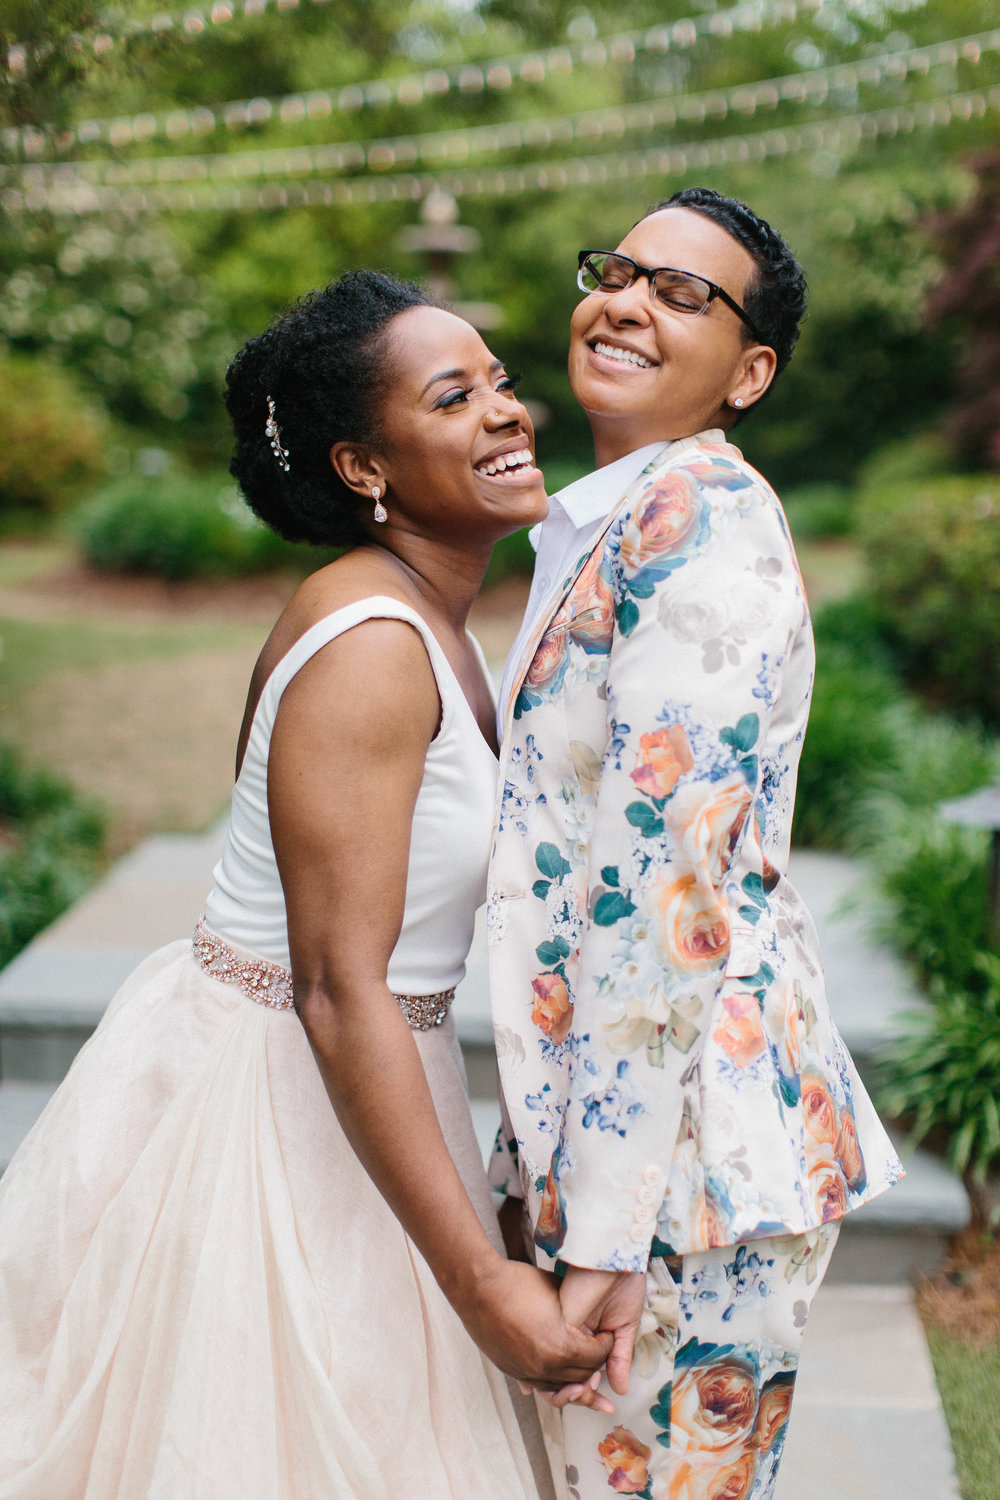 the_atrium_wedding_atlanta_norcross_lifestyle_photographers_lgbtq_1155.jpg